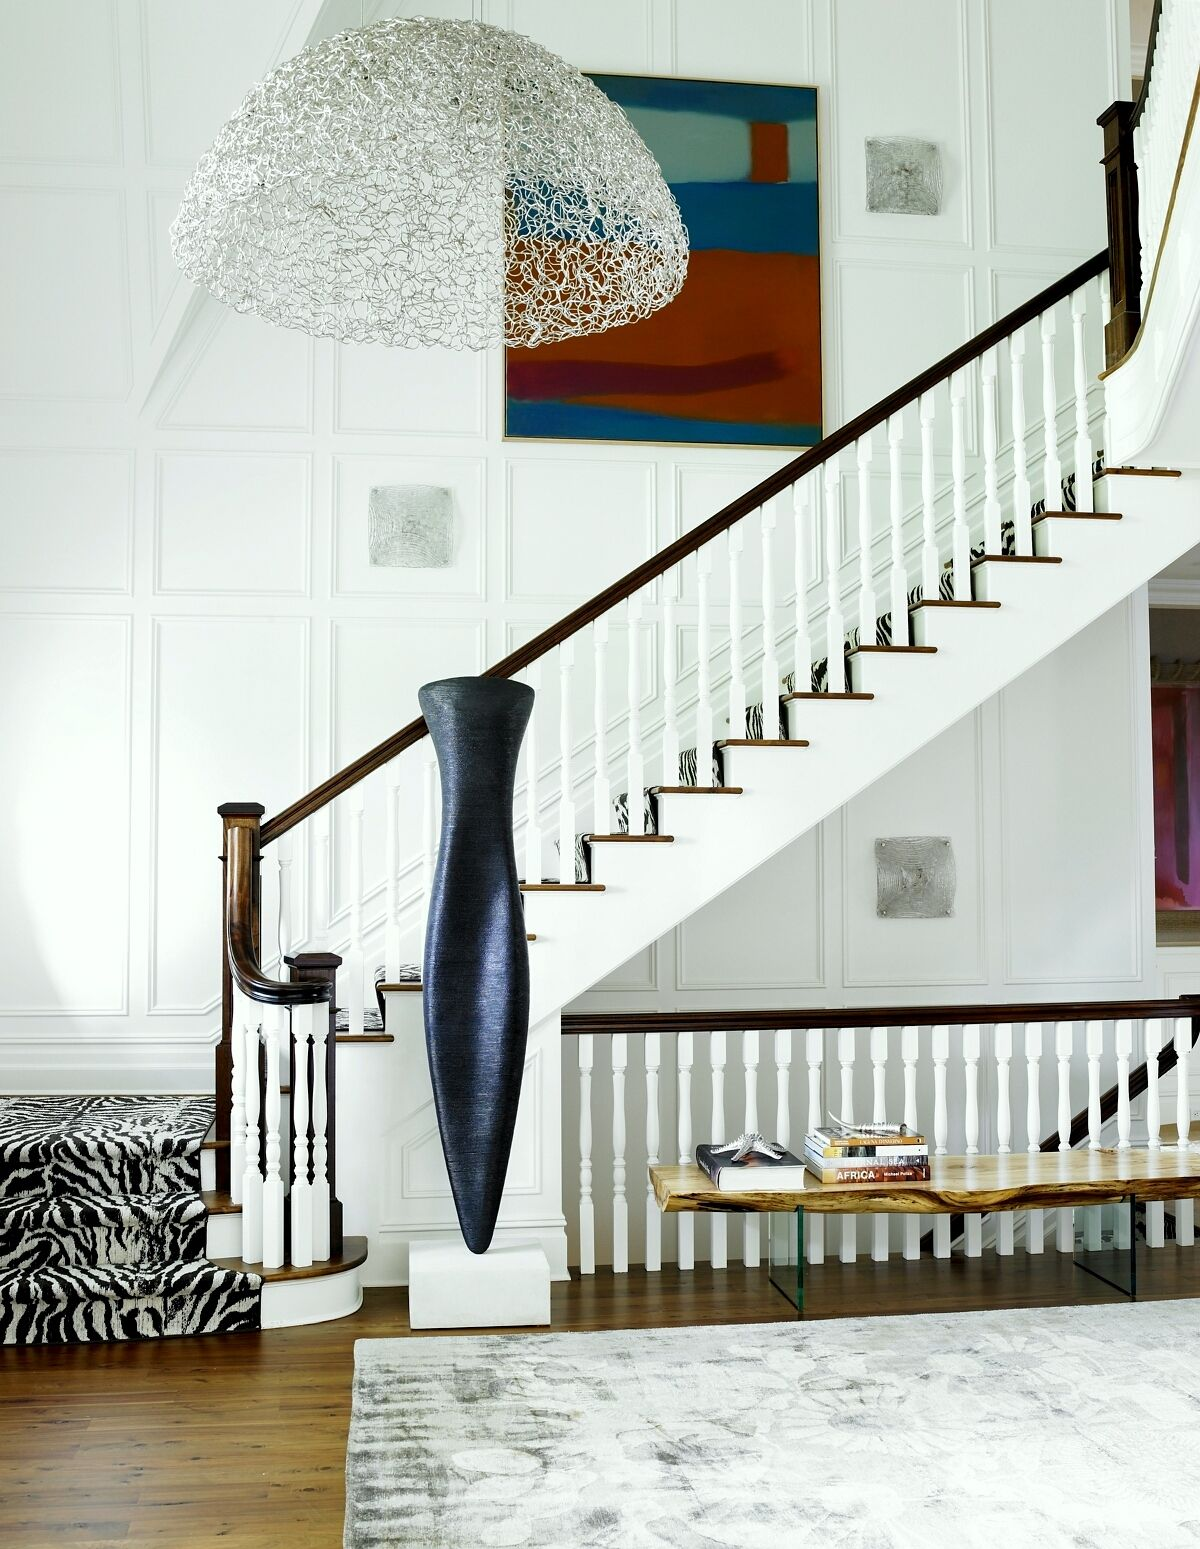 27 Stylish Staircase Decorating Ideas How To Decorate Stairways